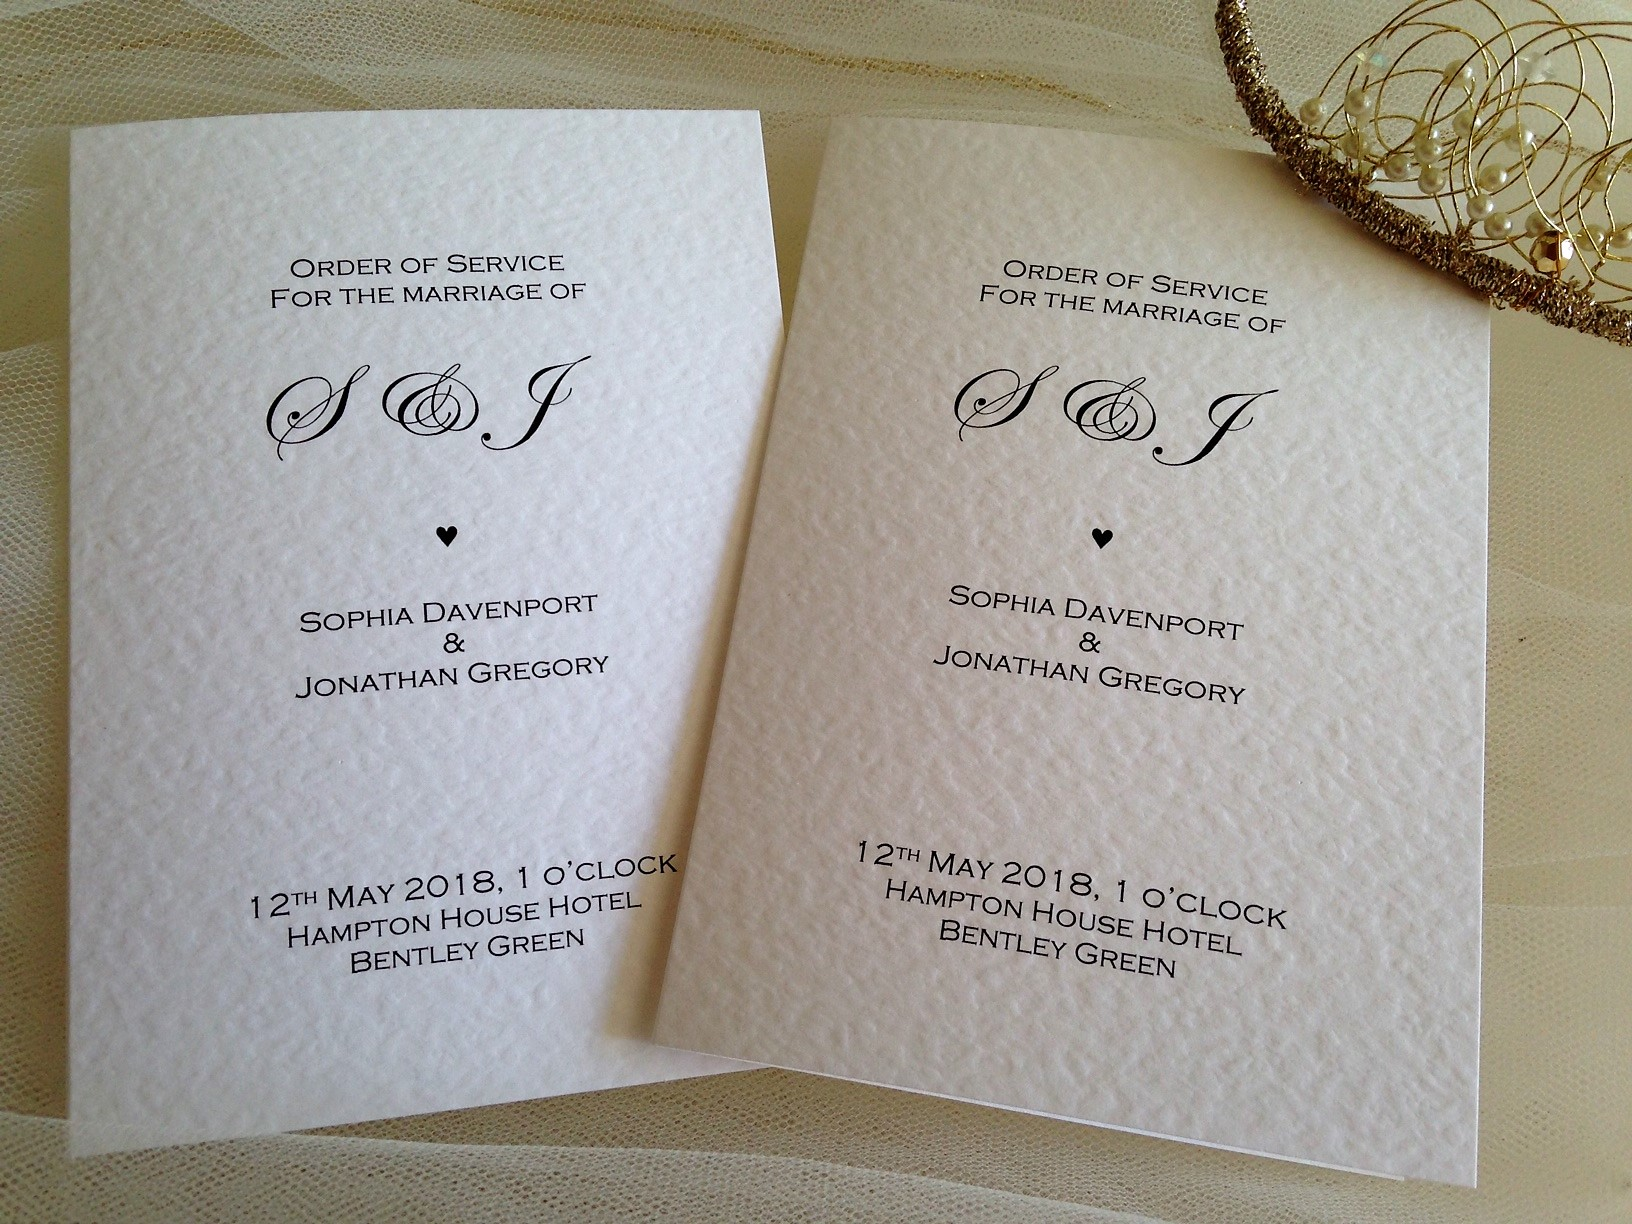 Order of Service Wedding Template - Daisy Chain Invites